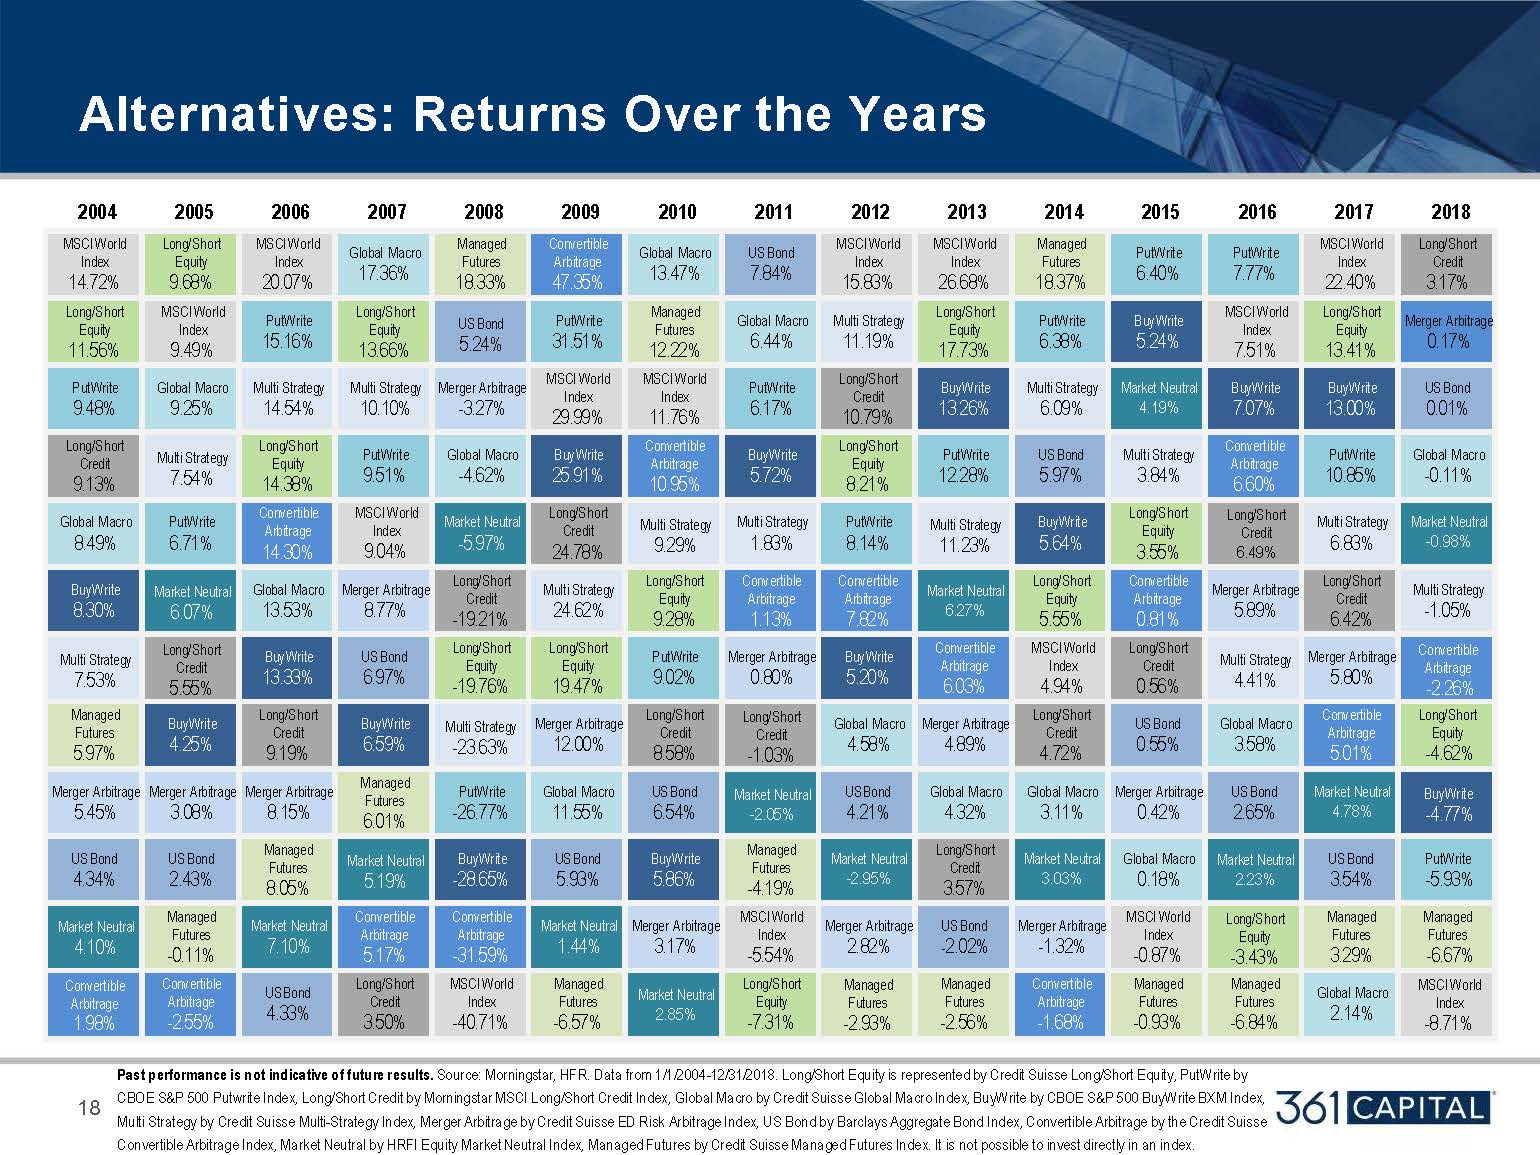 Alternatives Returns Over the Years